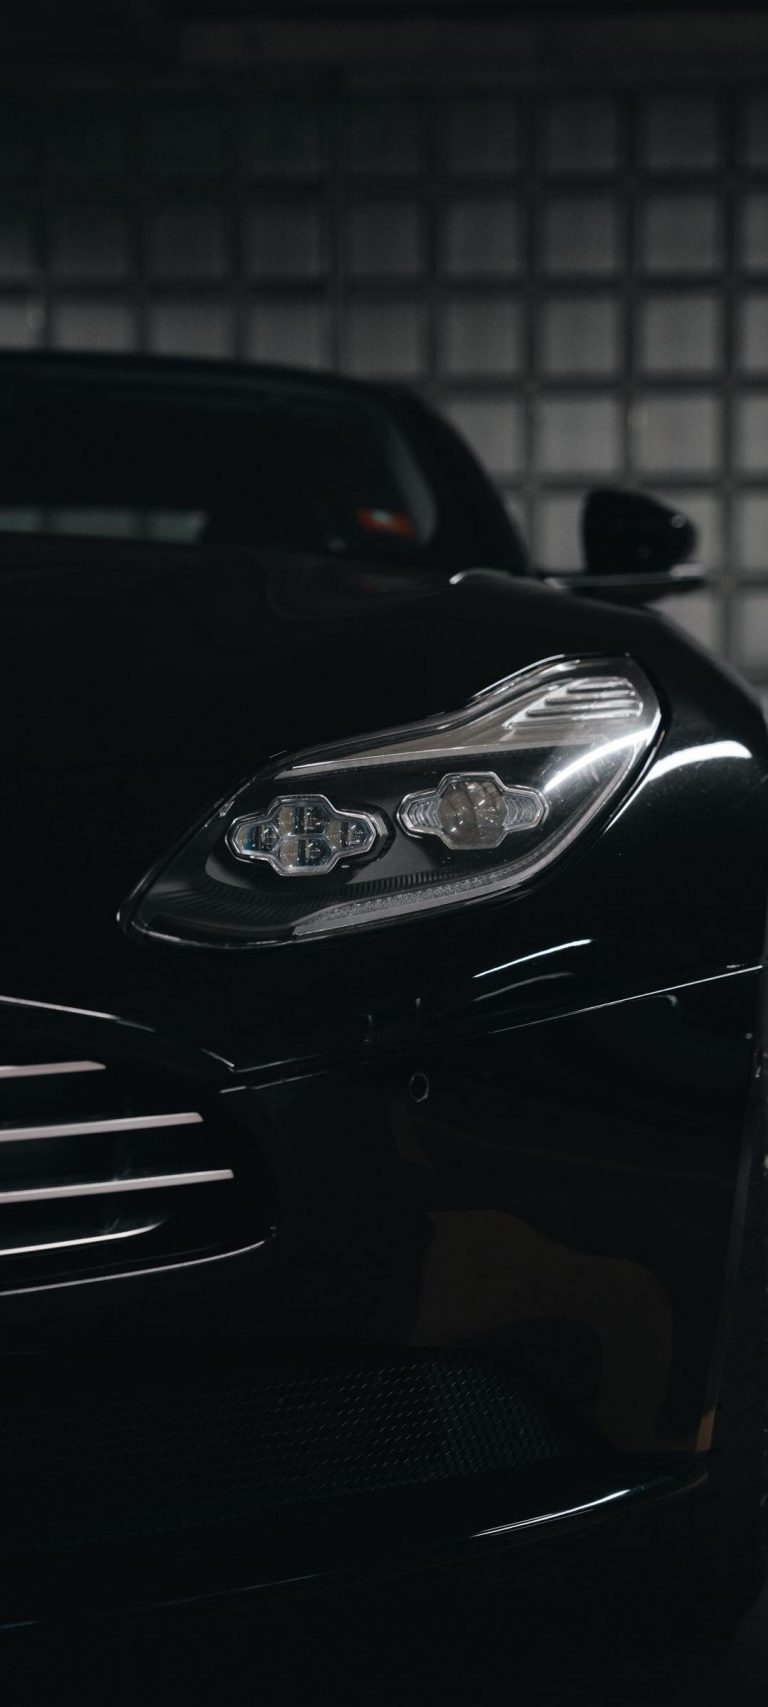 My recommendation for car shoppers. Black Car Grill Wallpaper